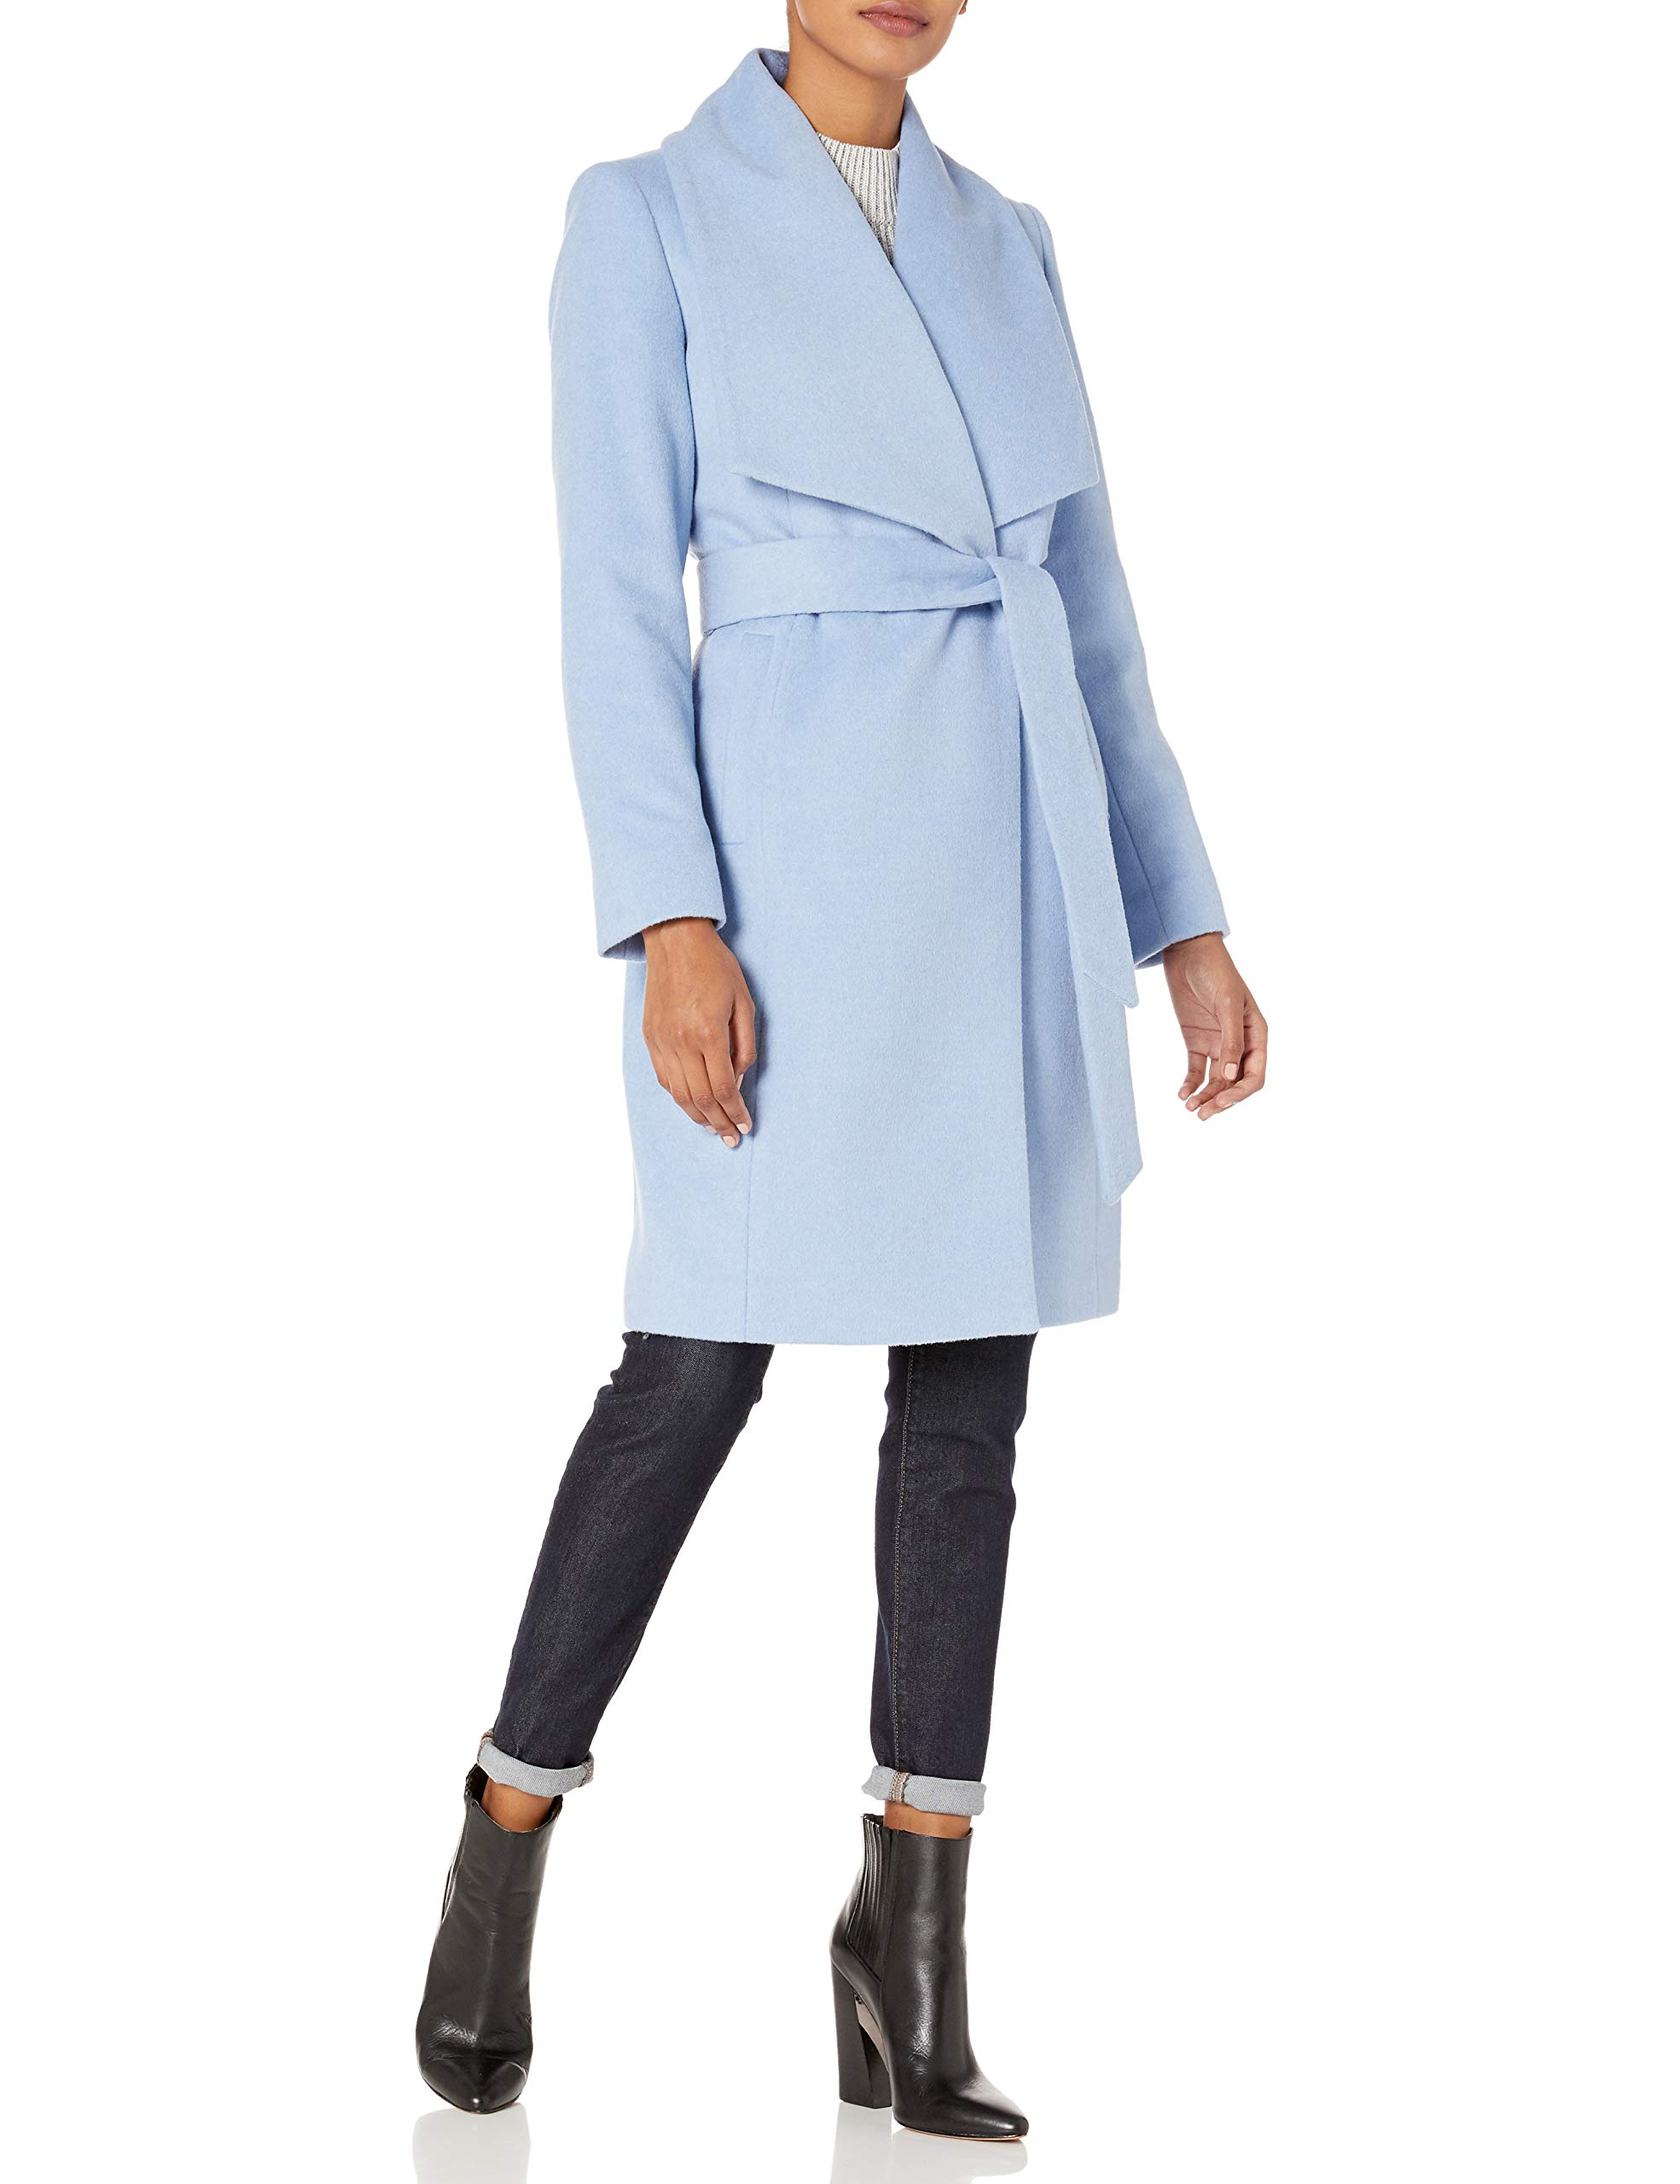 Cole Haan Women's Slick Wool wrap Coat, Ice Blue, 6 by Cole Haan